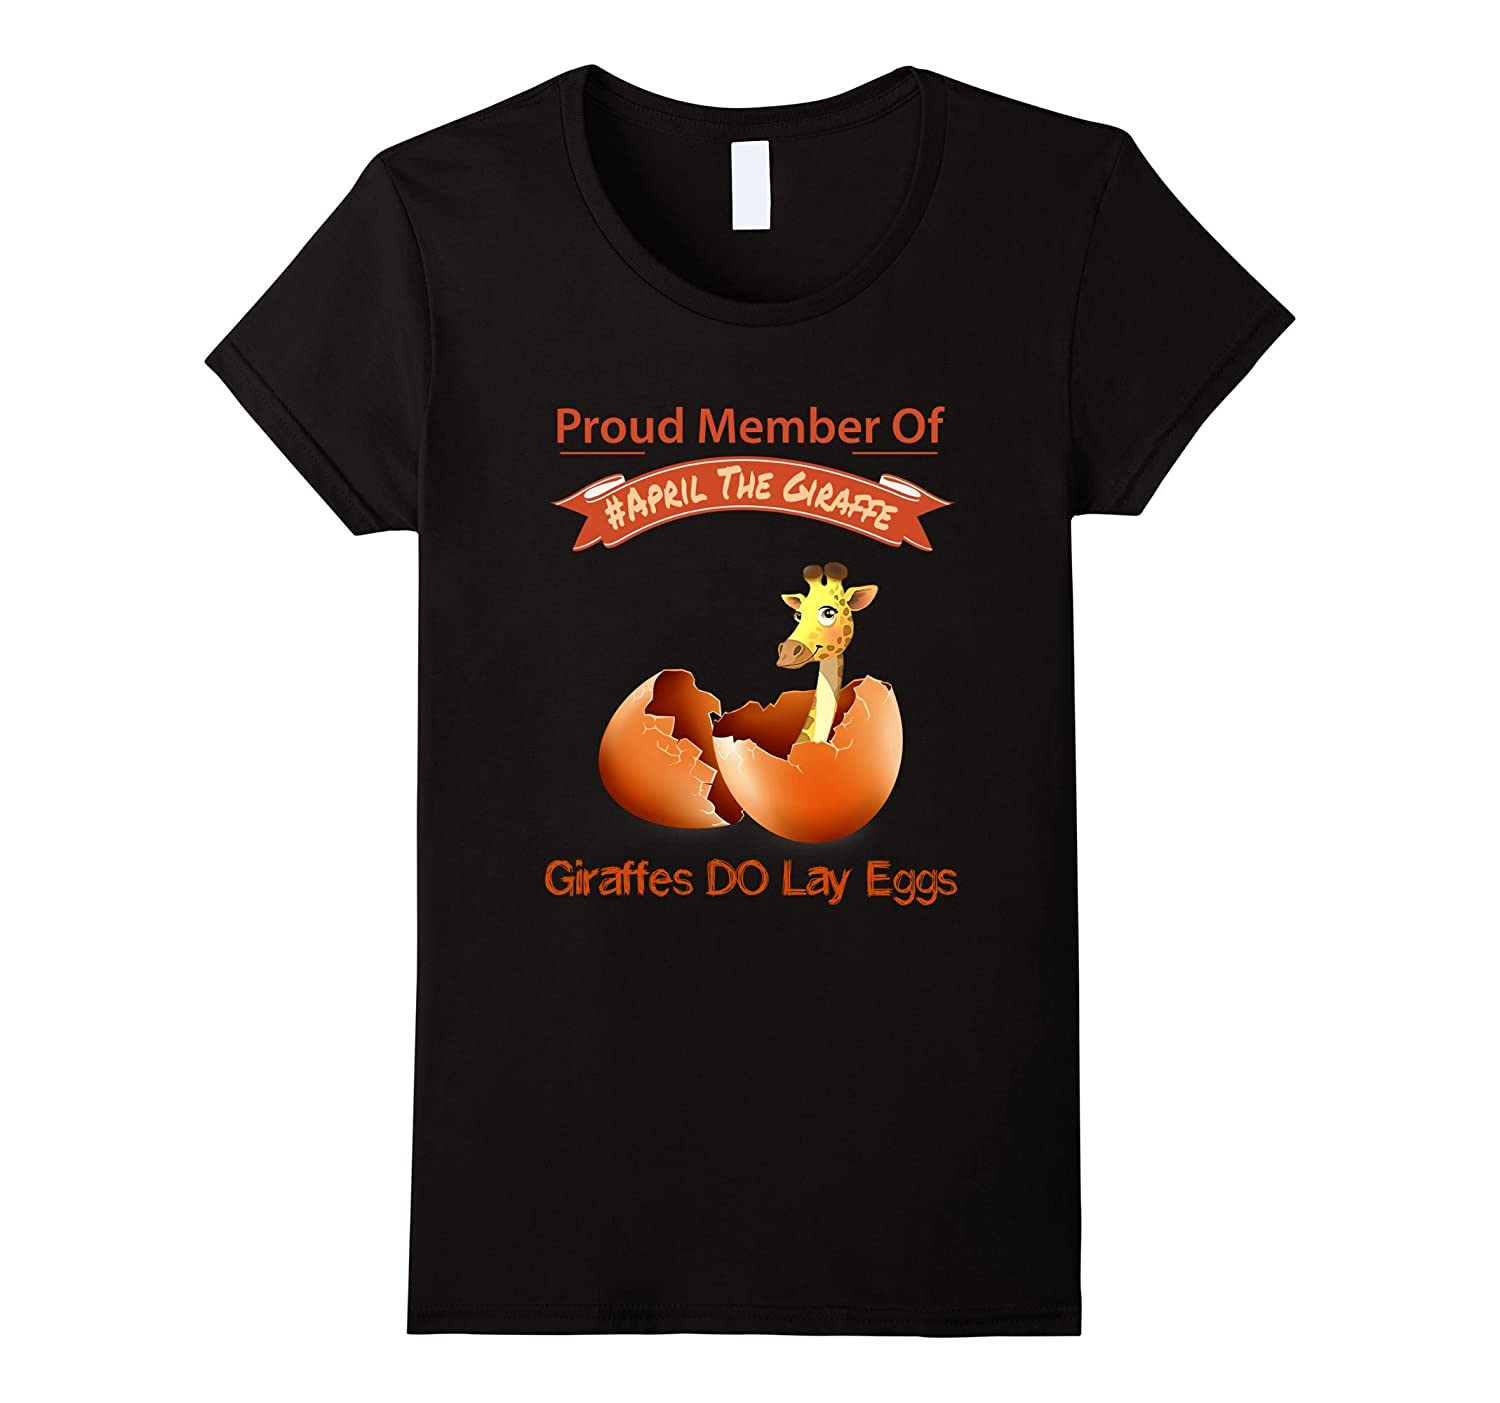 giraffe eggs cute t-shirt 2017